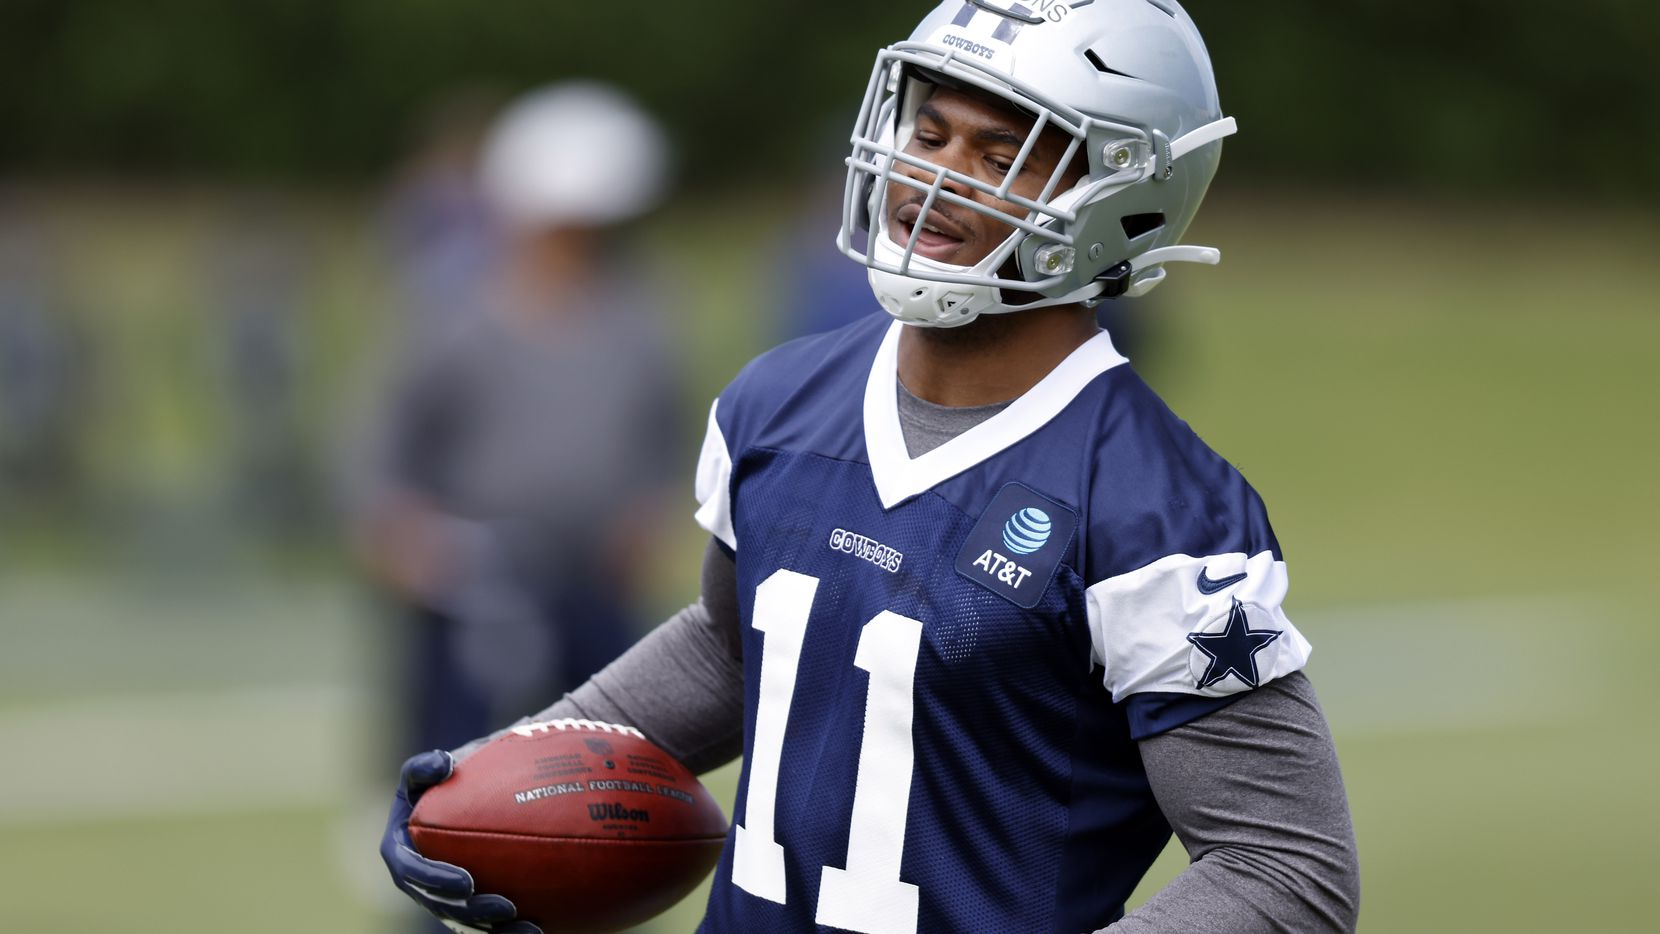 Dallas Cowboys rookie linebacker Micah Parsons (11) carries the ball during rookie minicamp at the The Star in Frisco, Texas, Friday, May 14, 2021. (Tom Fox/The Dallas Morning News)